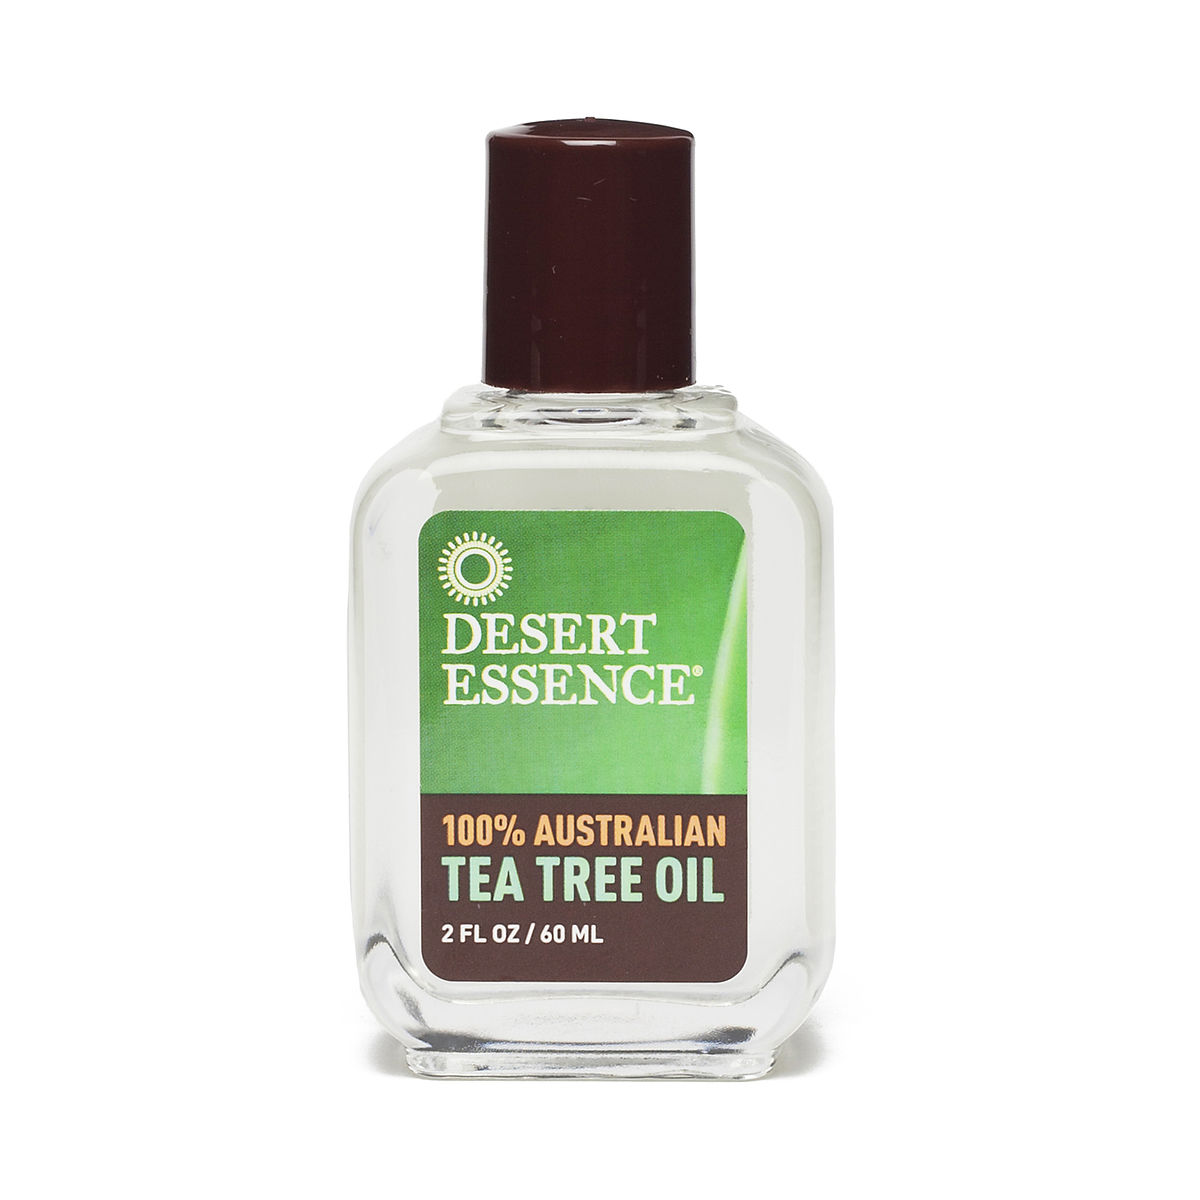 Desert Essence Tea Tree Oil Thrive Market